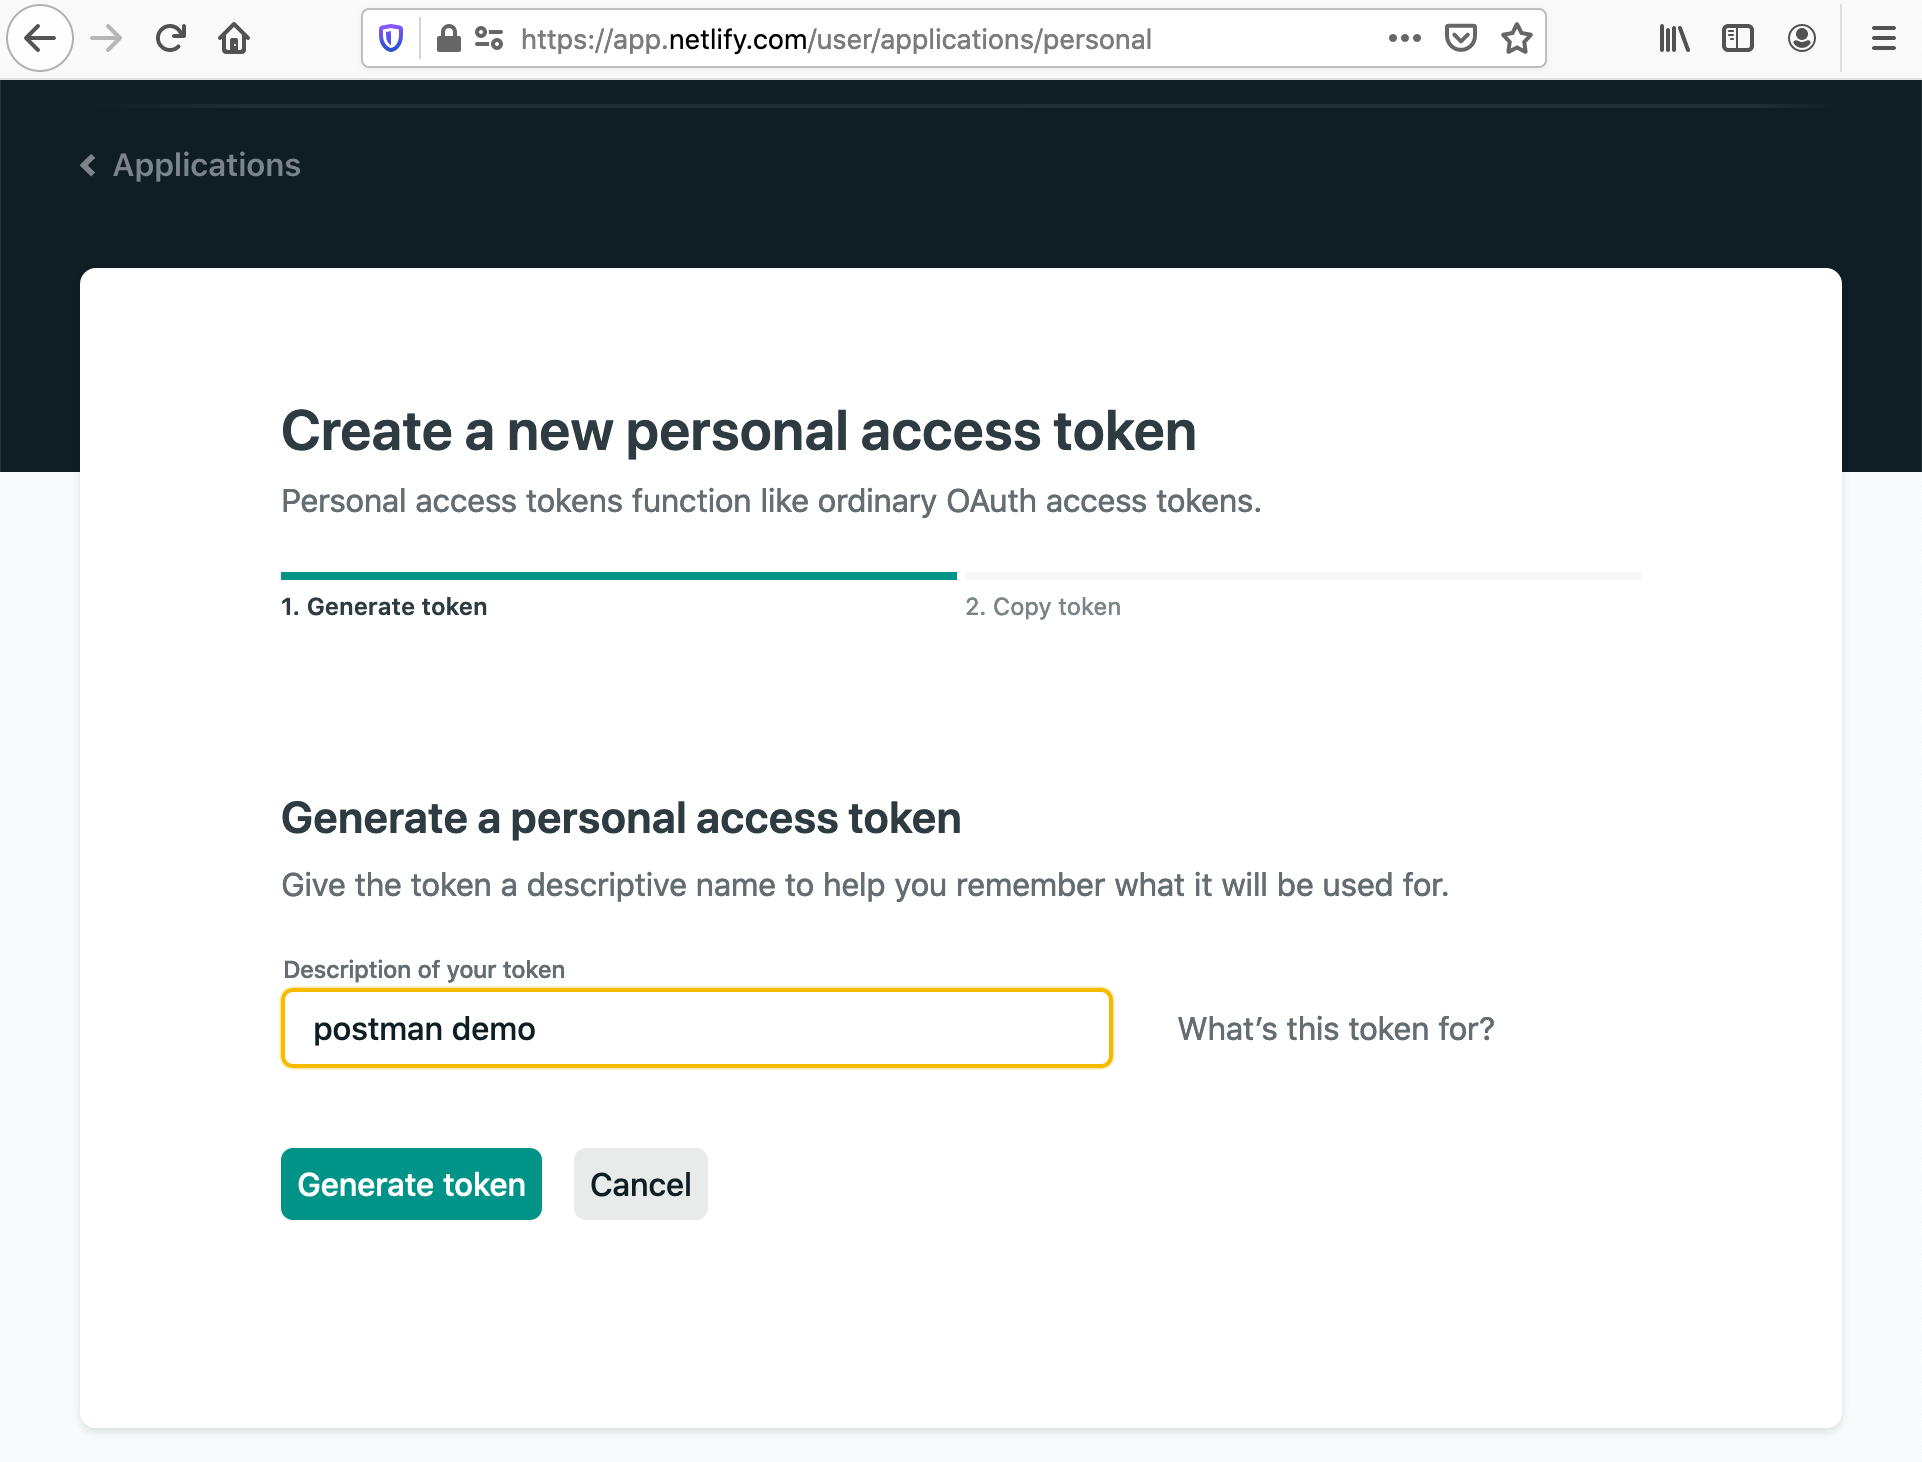 Screenshot of https://app.netlify.com/user/applications/personal showing how to generate your personal access token